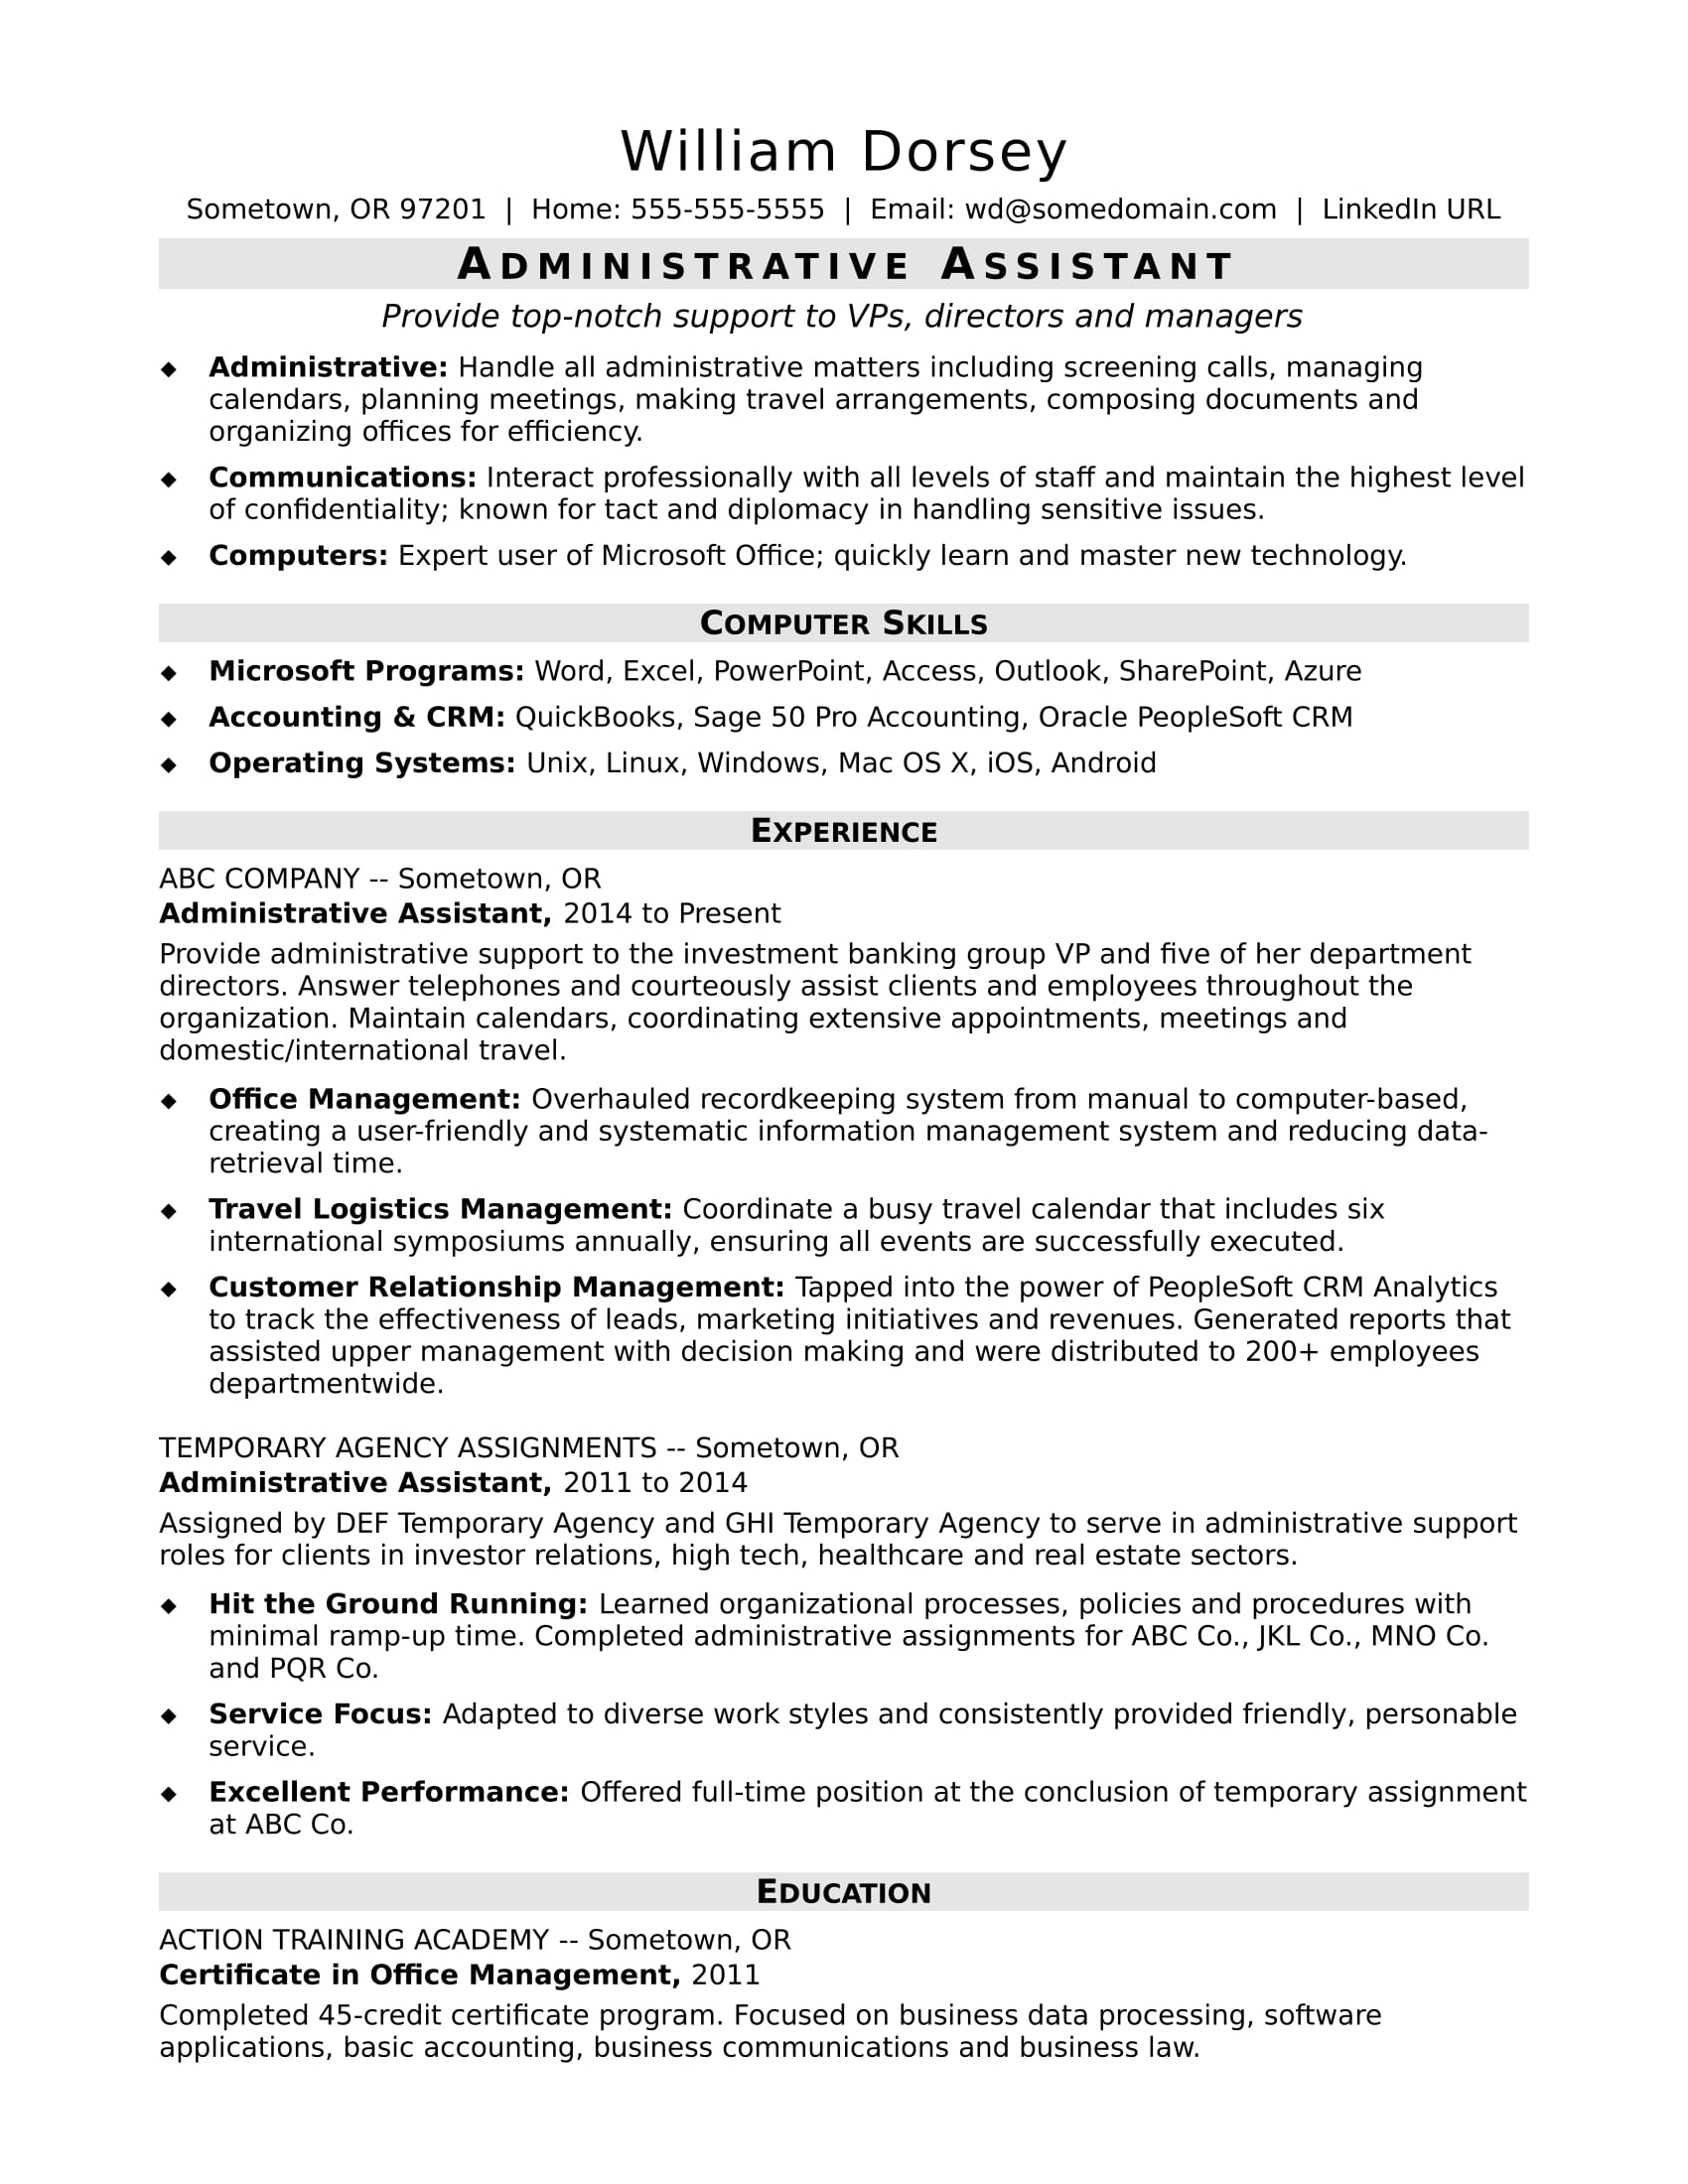 midlevel administrative assistant resume sample monster executive examples credit manager Resume Executive Assistant Resume Examples